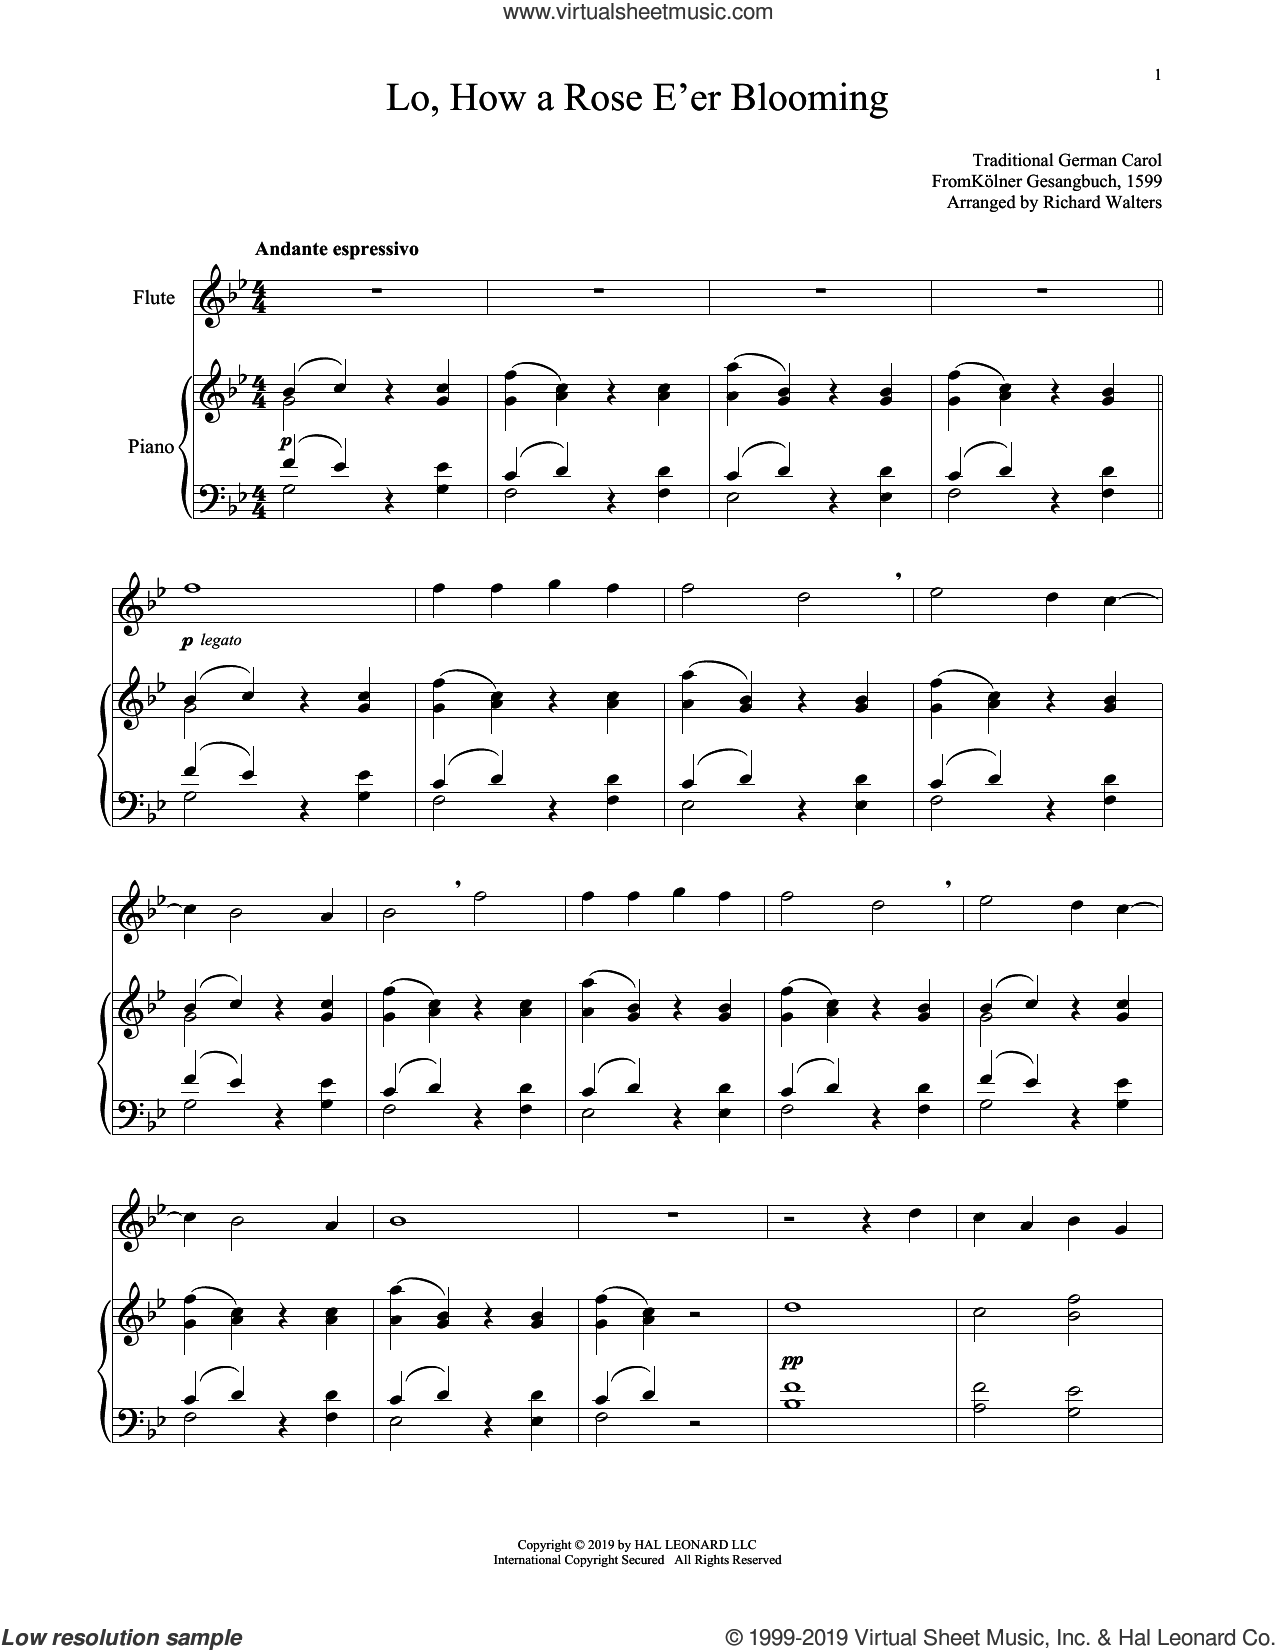 Lo, How A Rose E'er Blooming sheet music for flute and piano by Alte Catholische Geistliche Ki, 15th Century German Carol and Theodore Baker, intermediate skill level